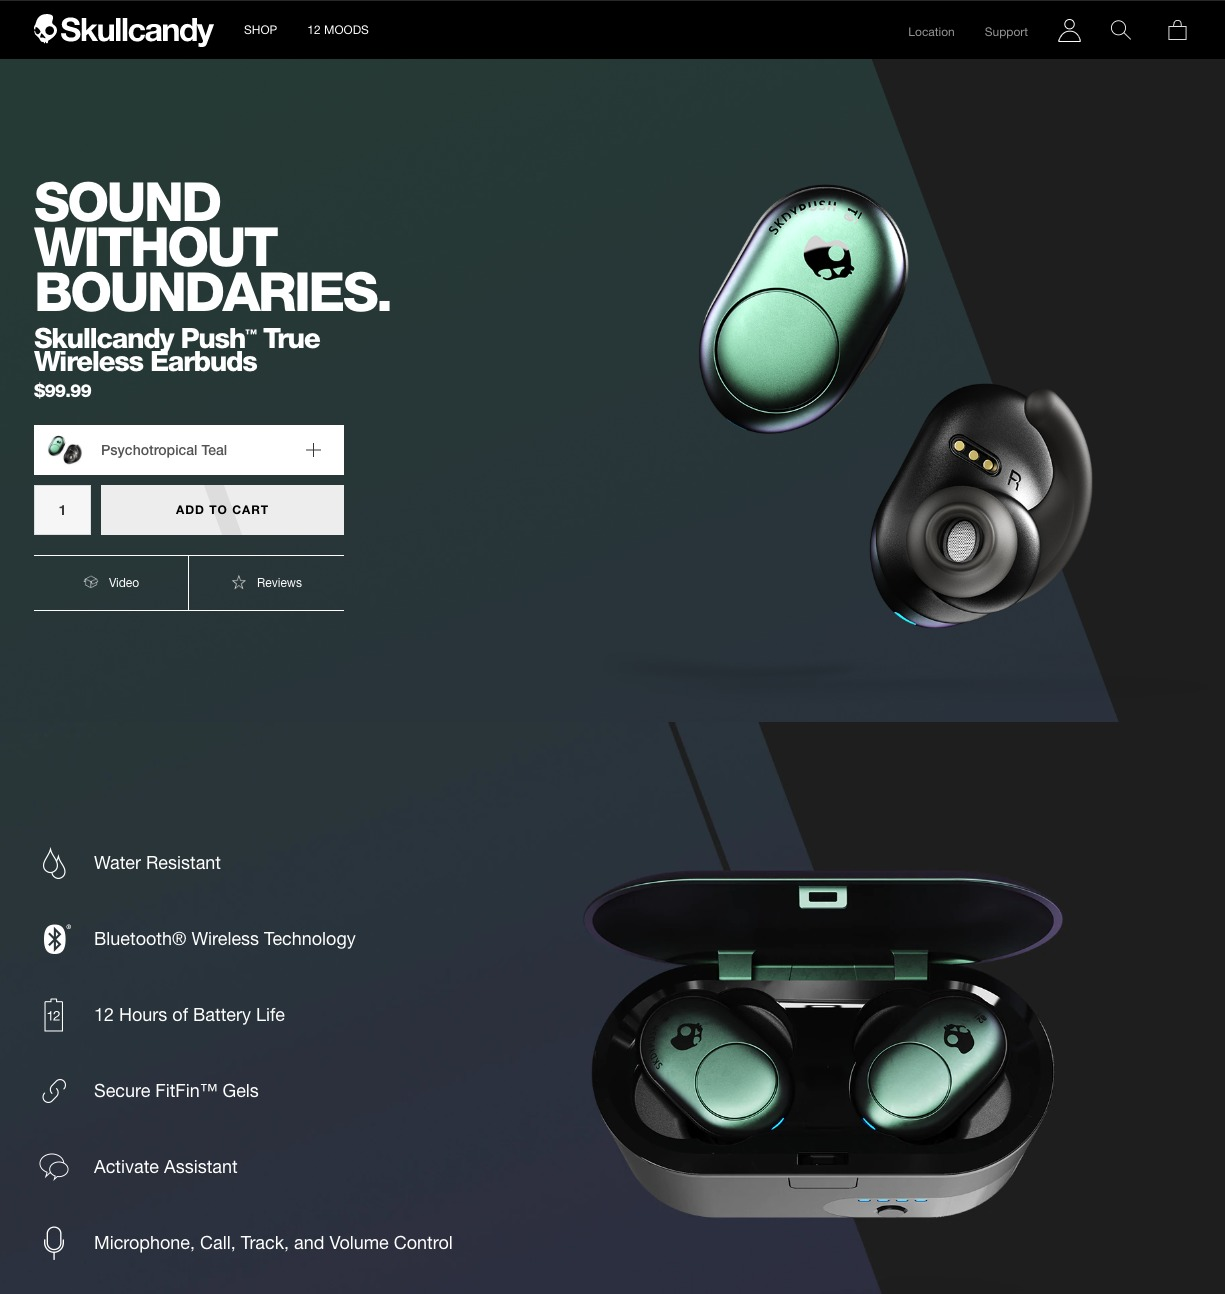 Skullcandy product page